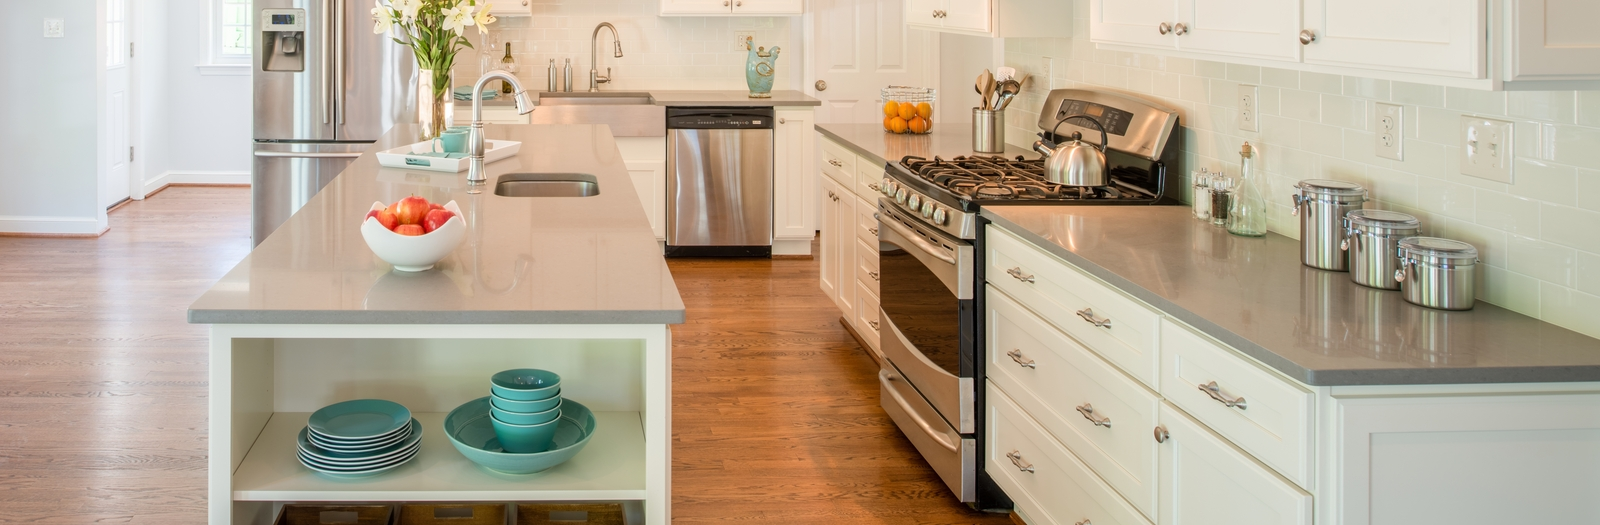 Transitional Kitchen with high arc kitchen faucet with pull out sprayer